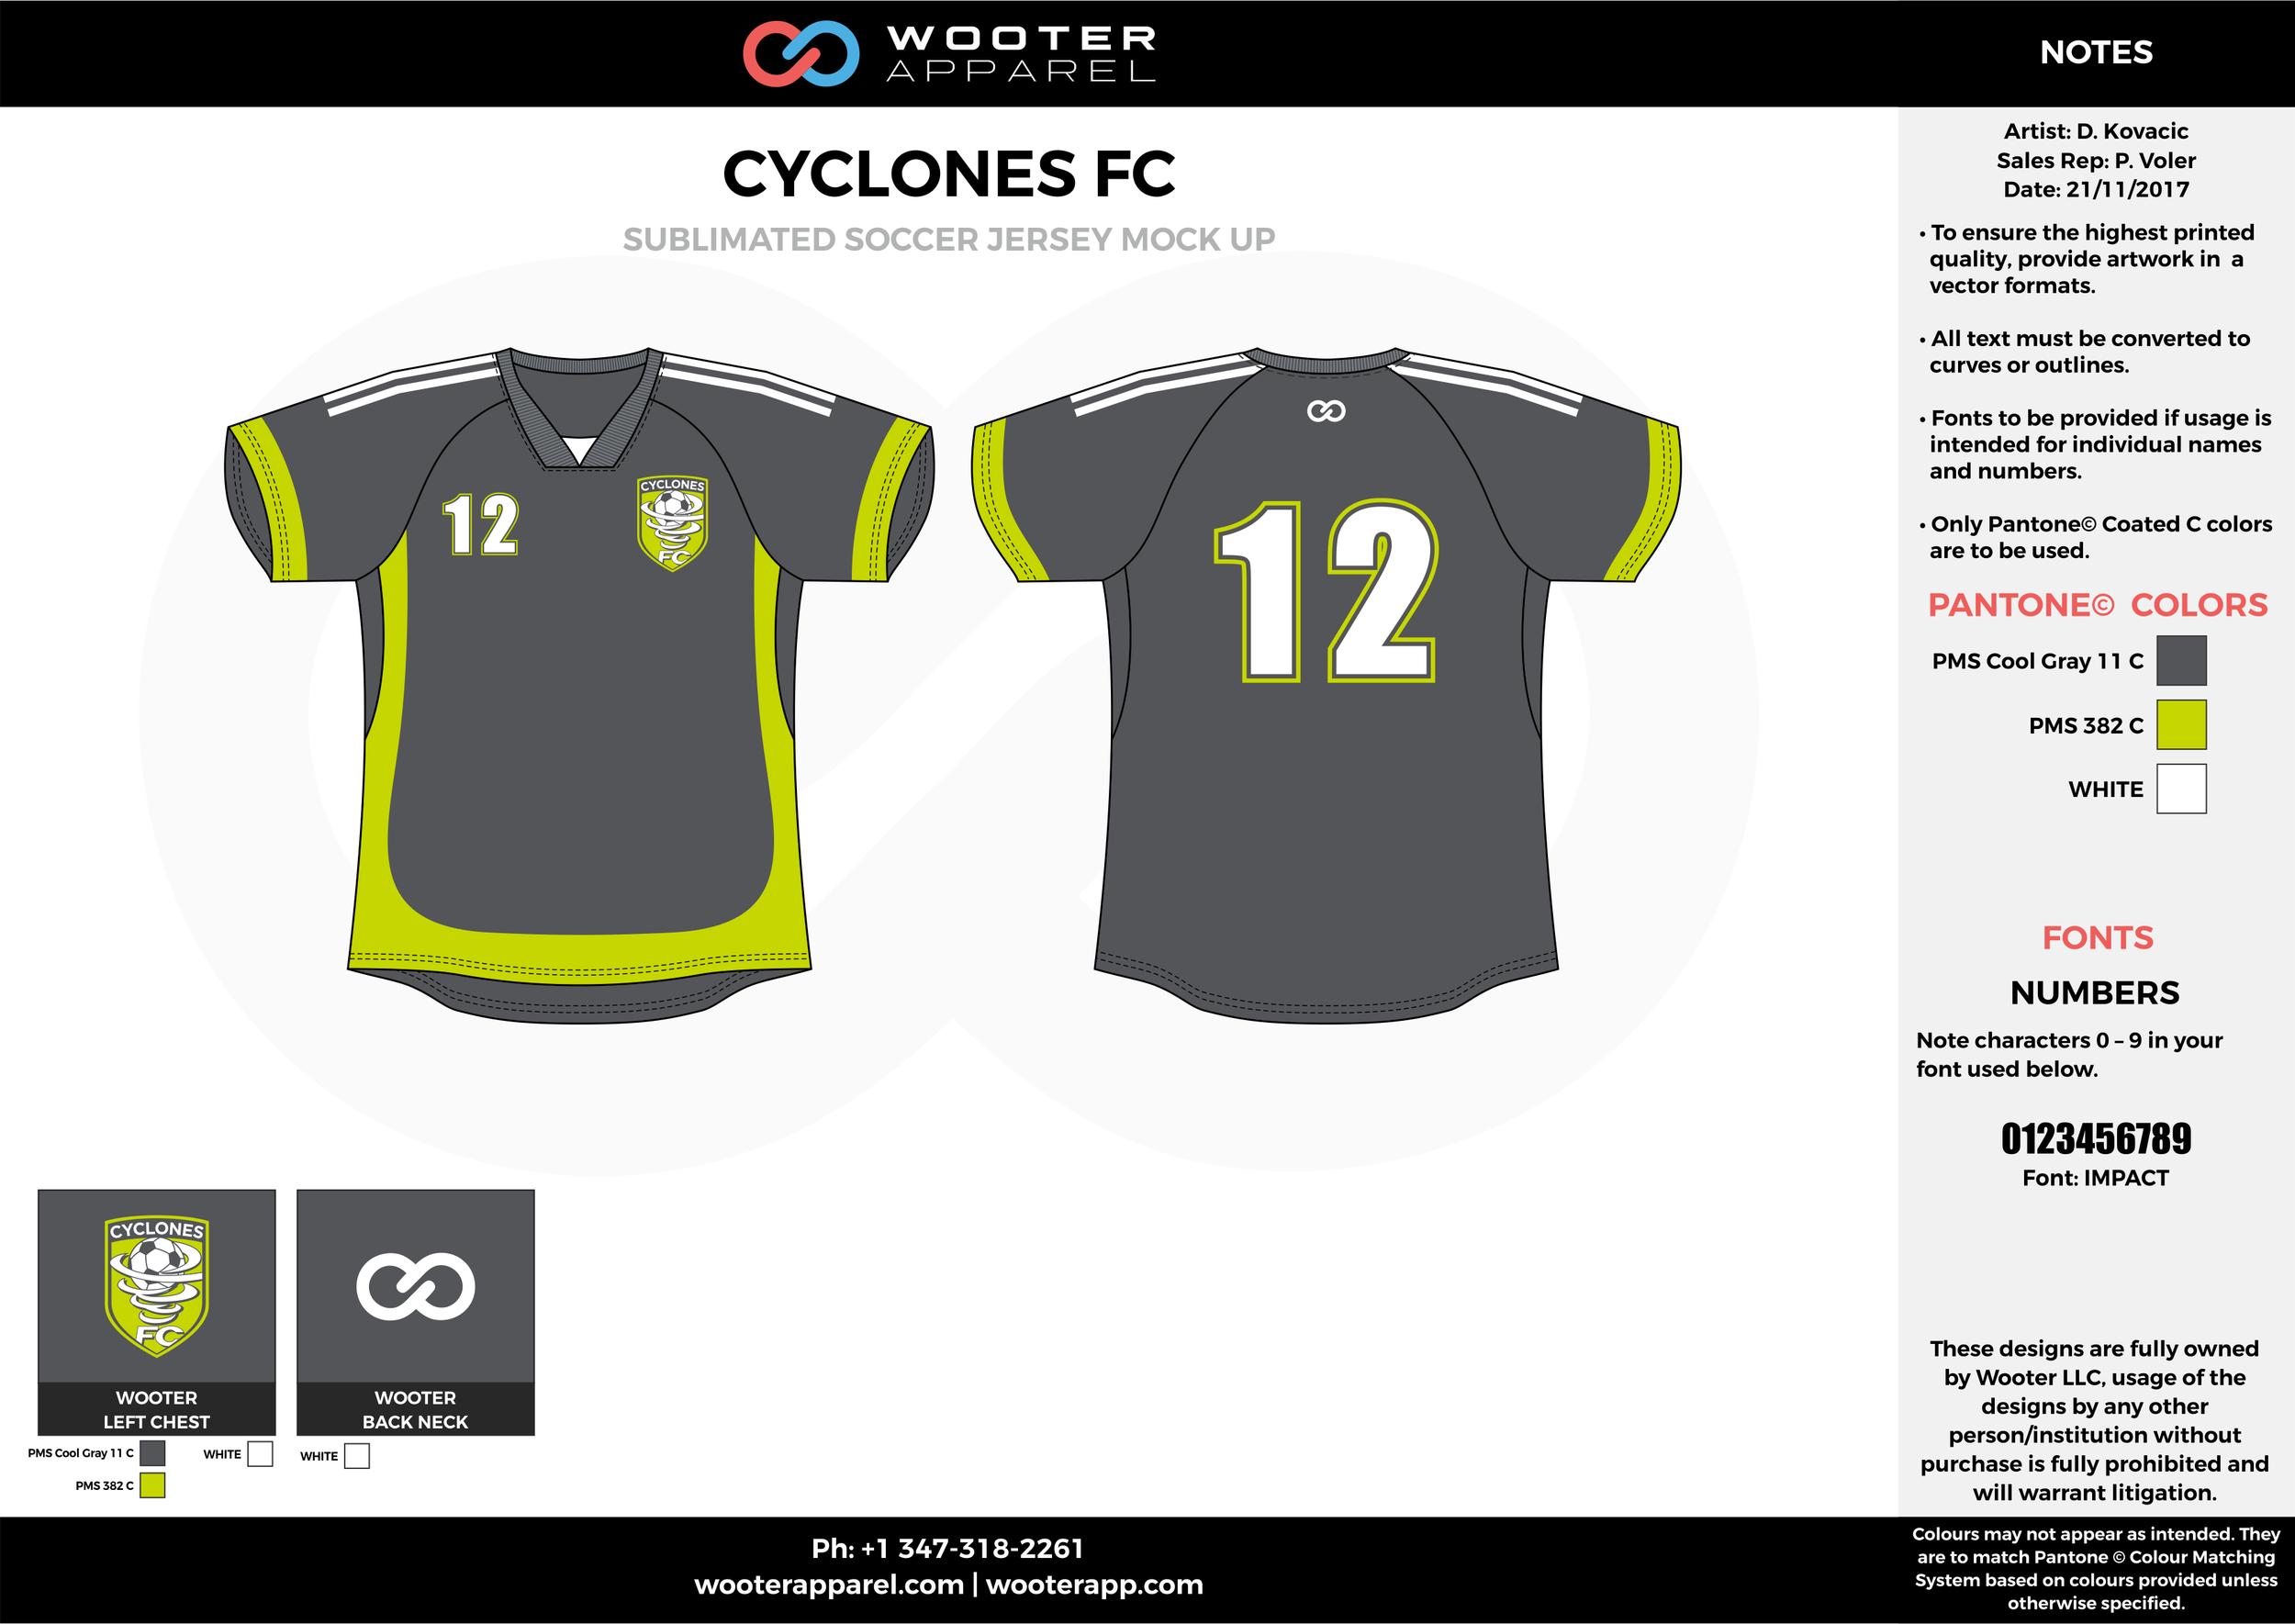 CYCLONES FC gray apple green white custom sublimated soccer uniform jersey shirt